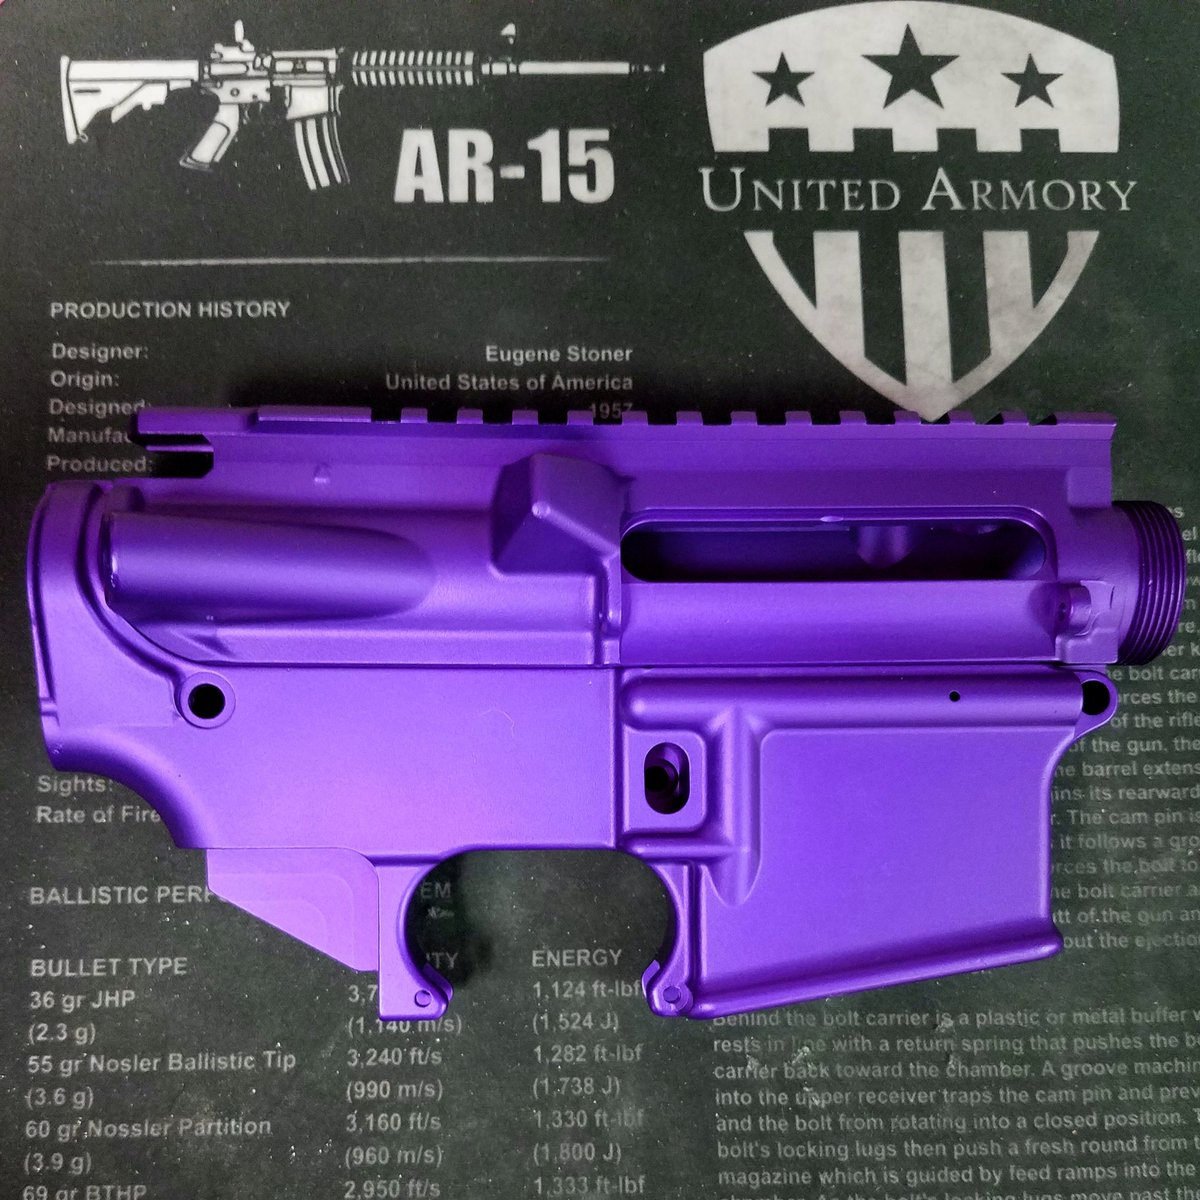 United Armory on Twitter: